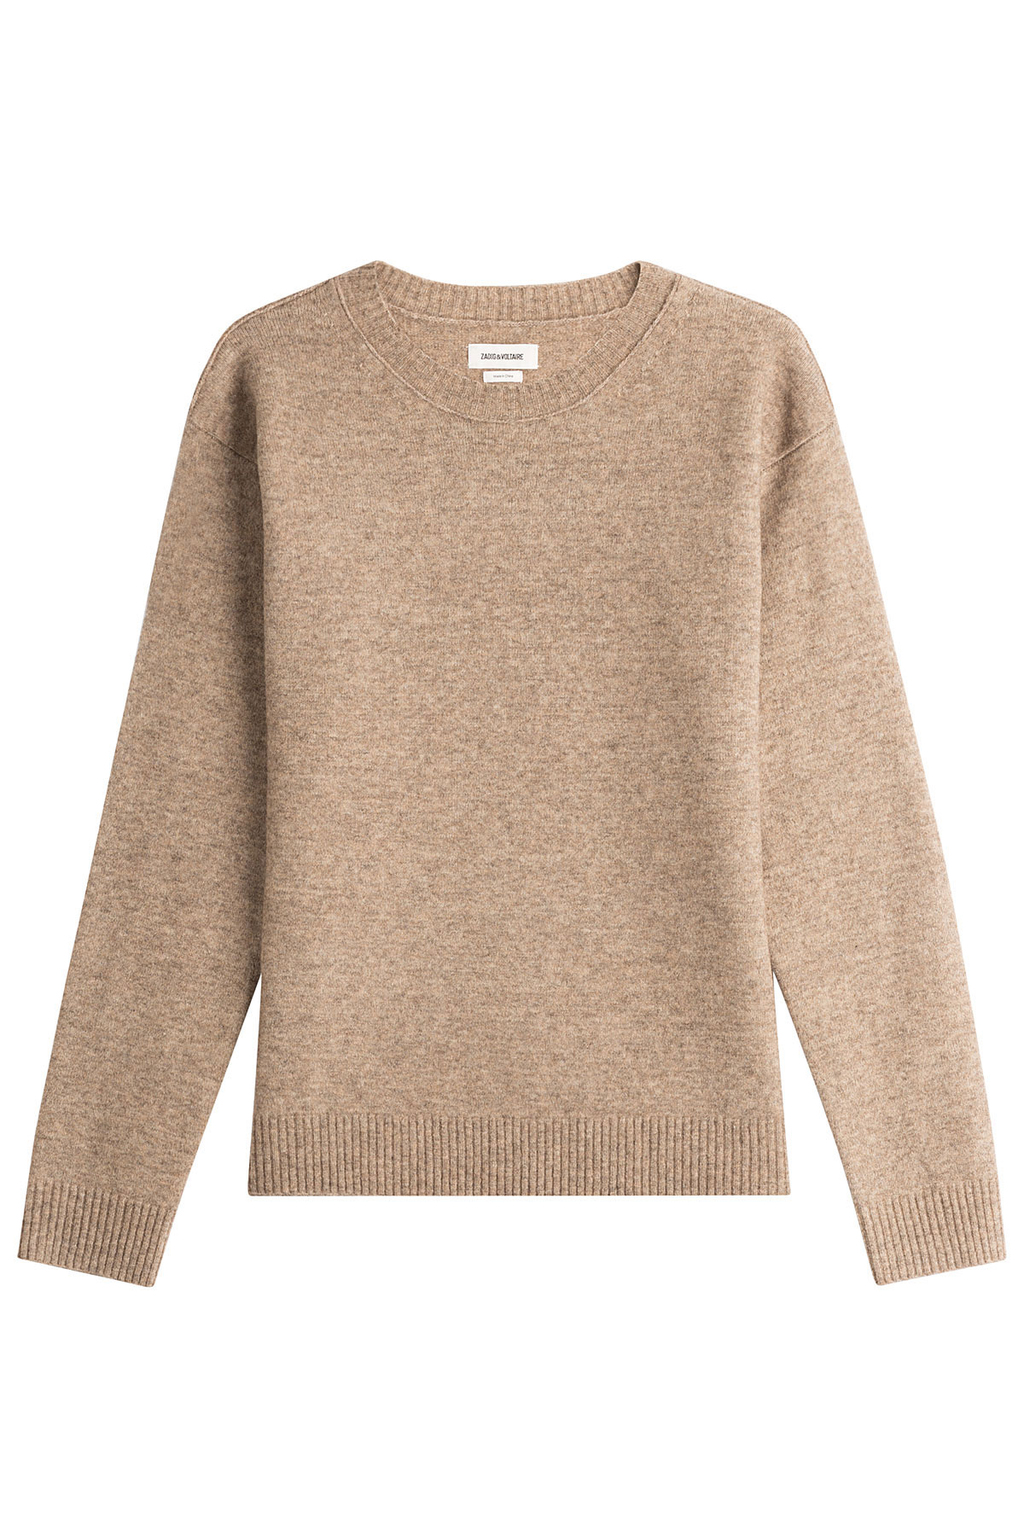 Pullover With Wool And Yak - pattern: plain; style: standard; predominant colour: stone; occasions: casual; length: standard; fibres: wool - mix; fit: standard fit; neckline: crew; sleeve length: long sleeve; sleeve style: standard; texture group: knits/crochet; pattern type: knitted - fine stitch; wardrobe: basic; season: a/w 2016